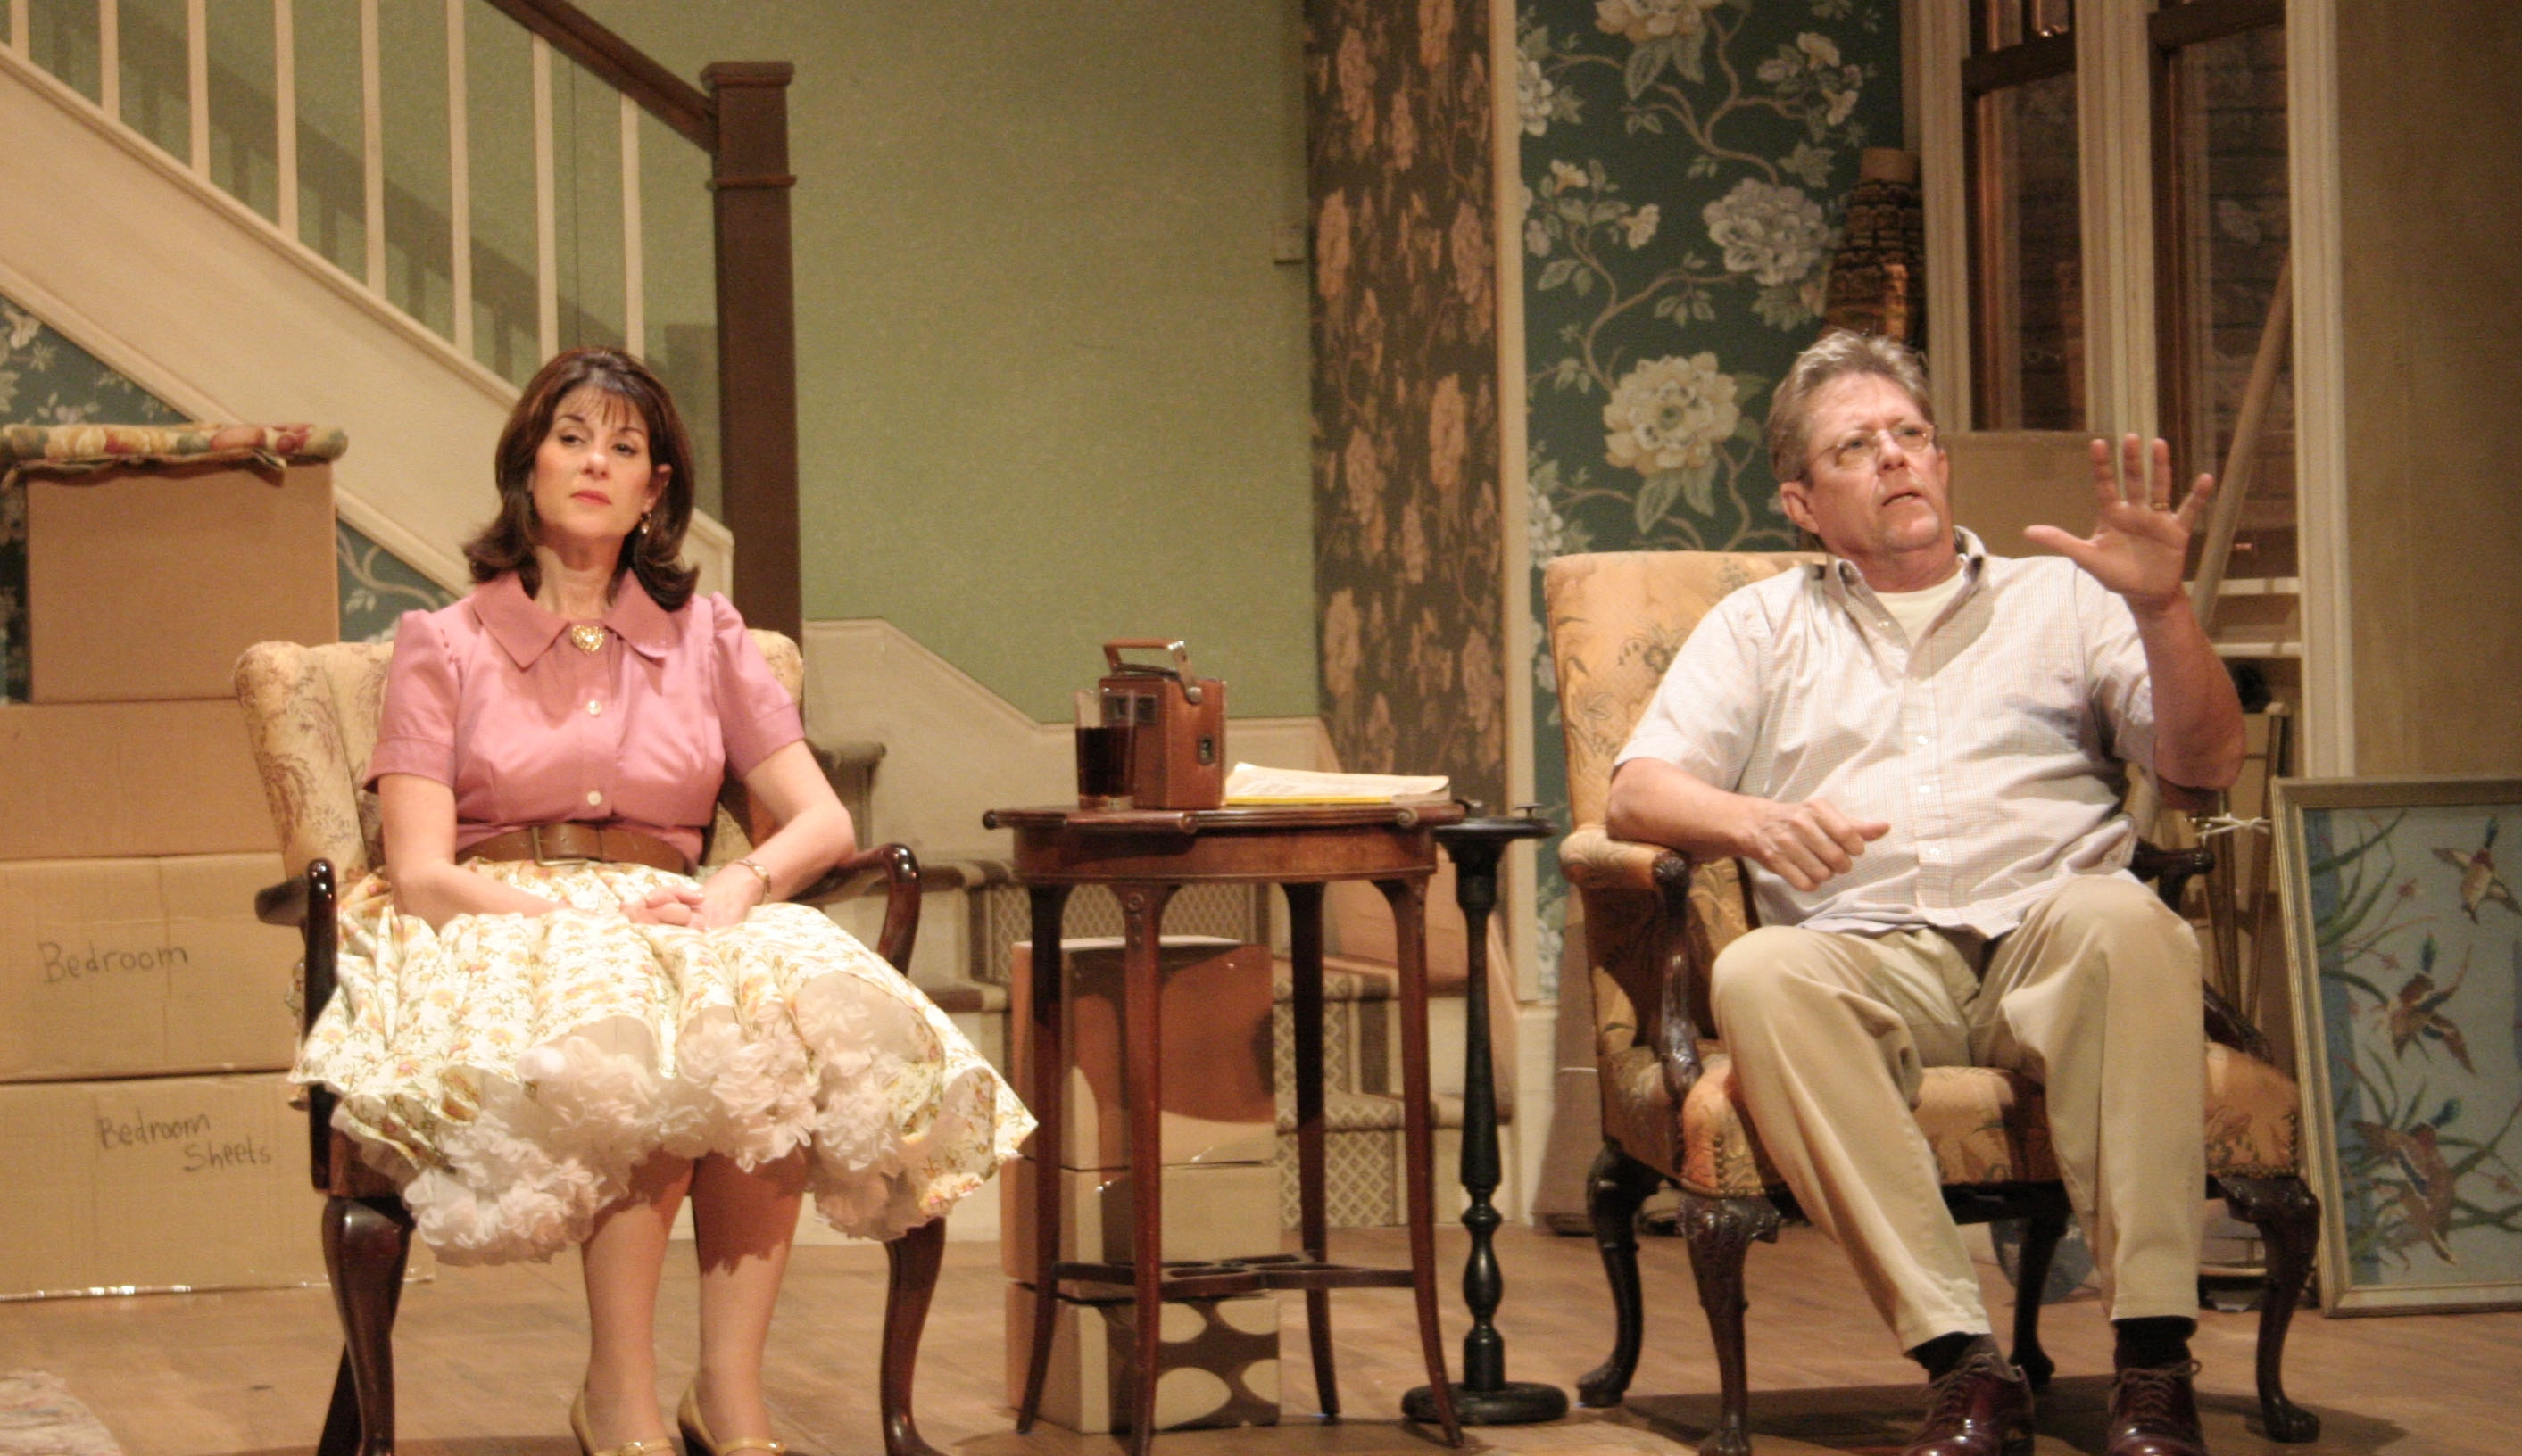 Pictured: Patti Gardner (Bev/Kathy) and Kenneth Kay (Russ/Dan) Photo by Tim Bennett. Caldwell Theatre Company.